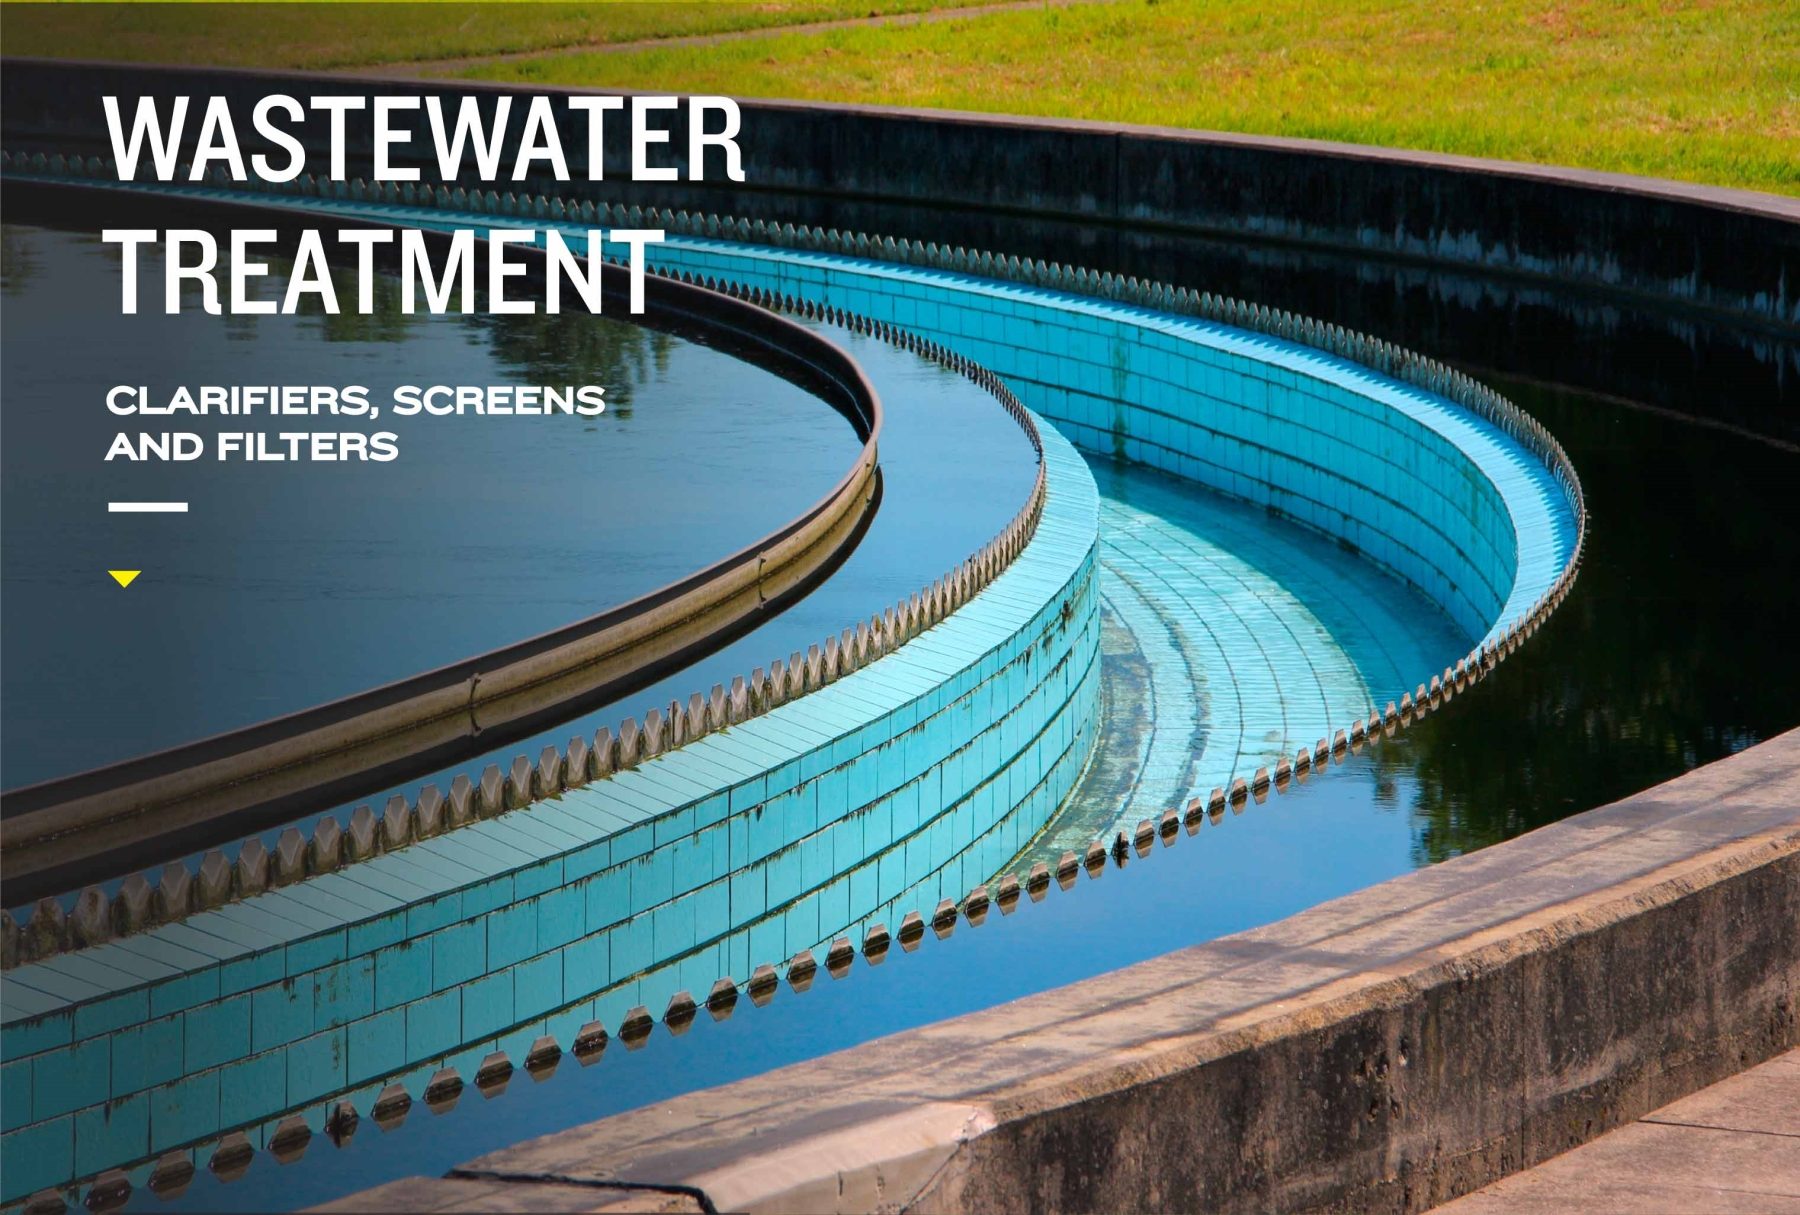 Wastewater Treatment: CLARIFIERS, SCREENS AND FILTERS